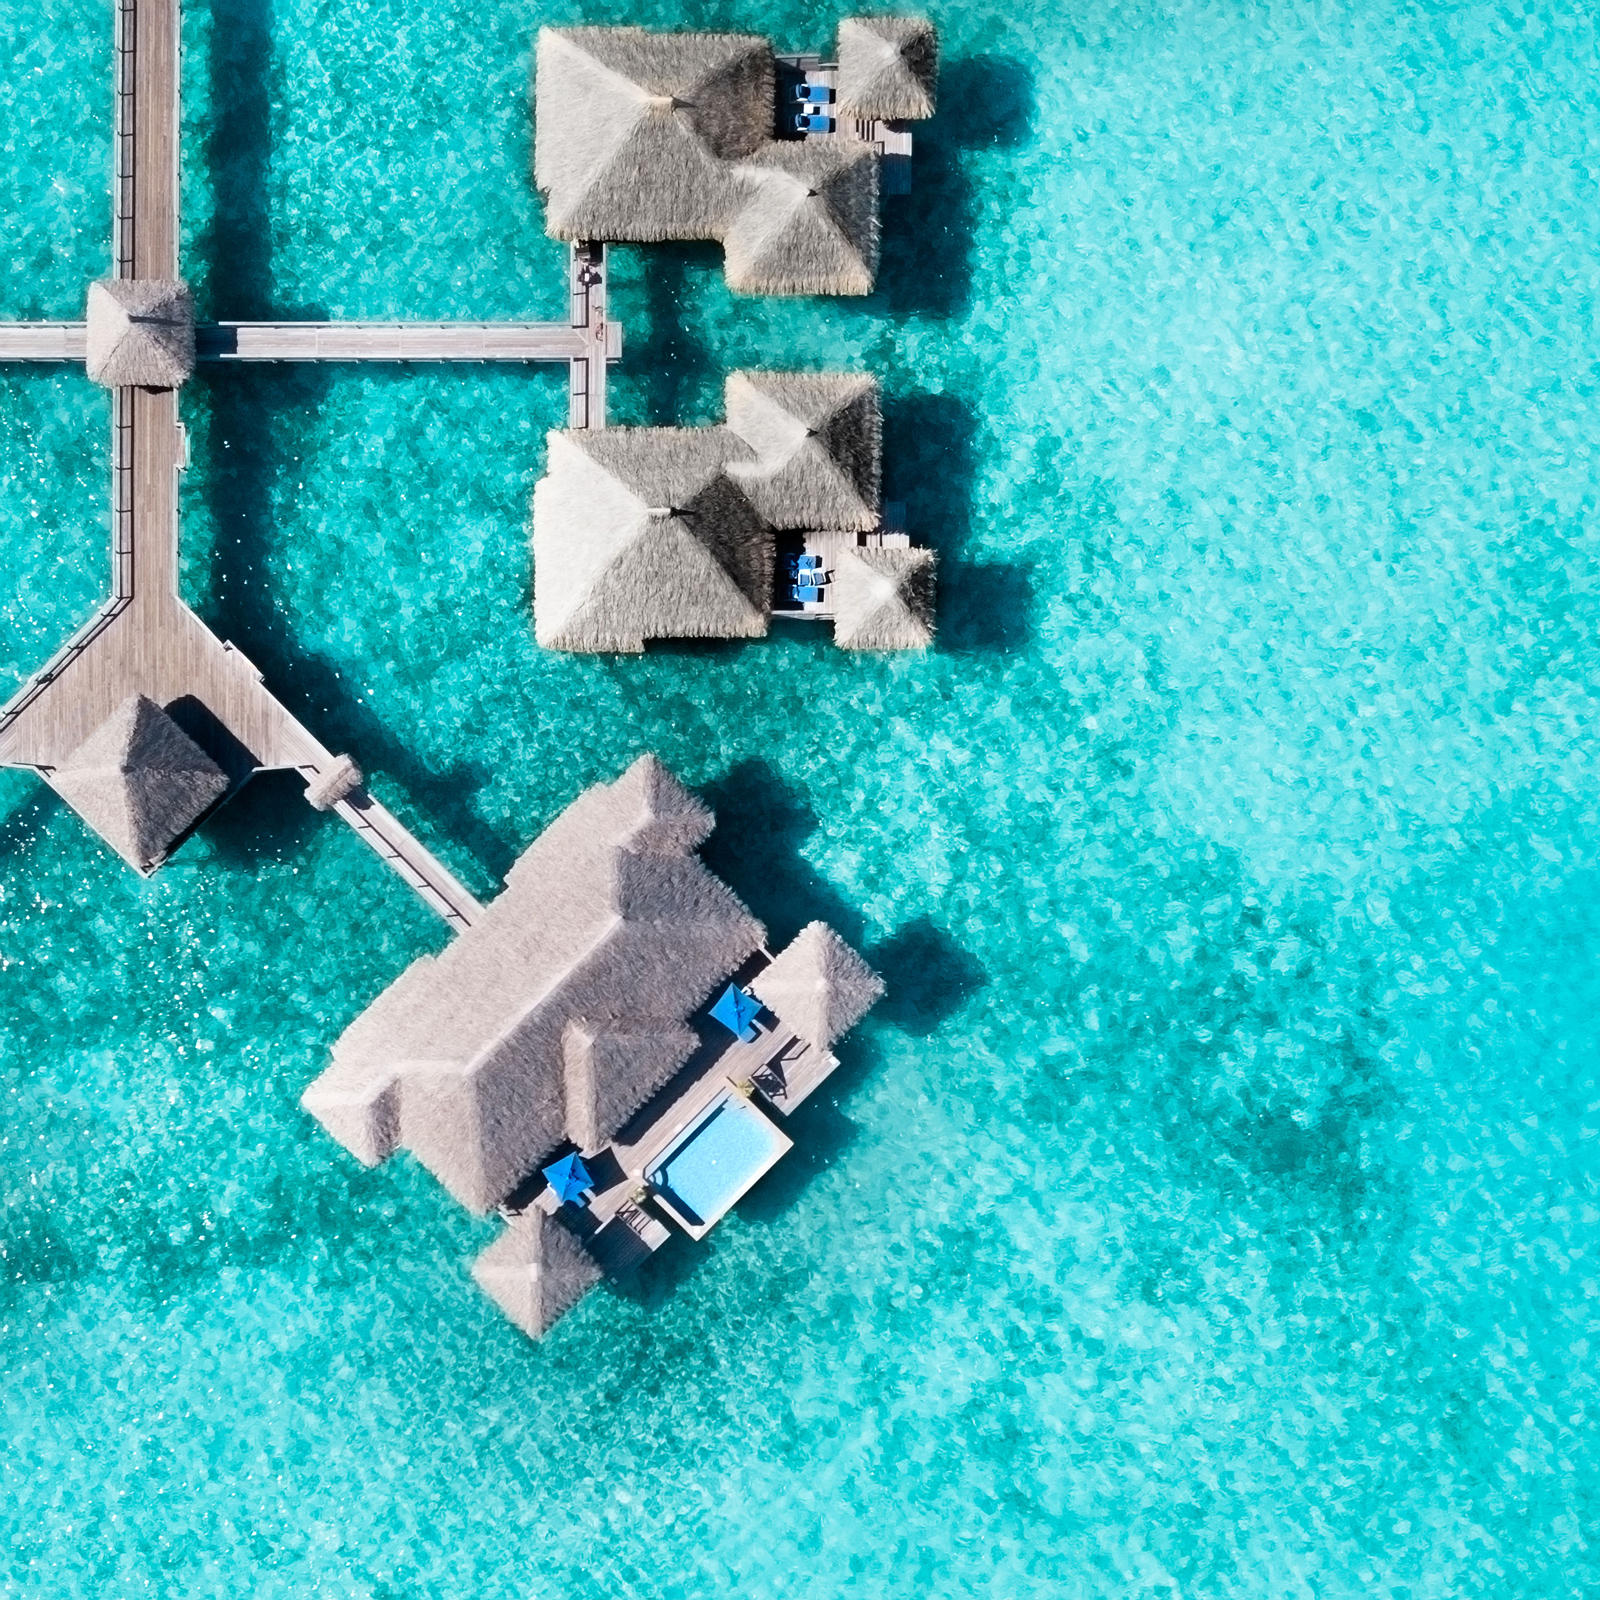 Aerial view of The St. Regis Bora Bora Resort's Overwater Villas & Pool Villas atop a turquoise lagoon with remarkable clarity.